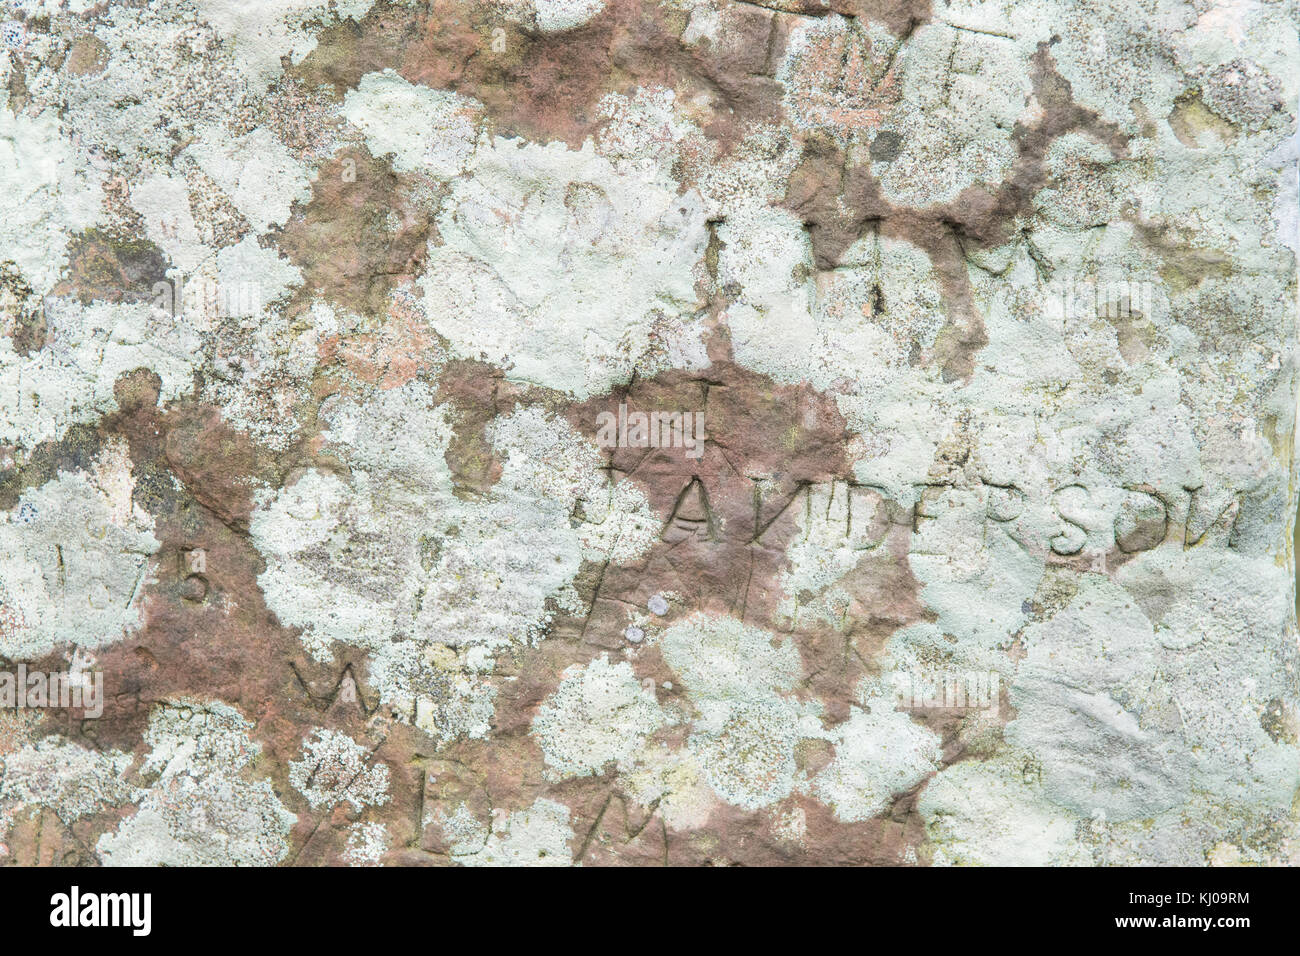 Graffiti on stone at Ring of Brodgar, Orkney, Scotland, UK - Stock Image